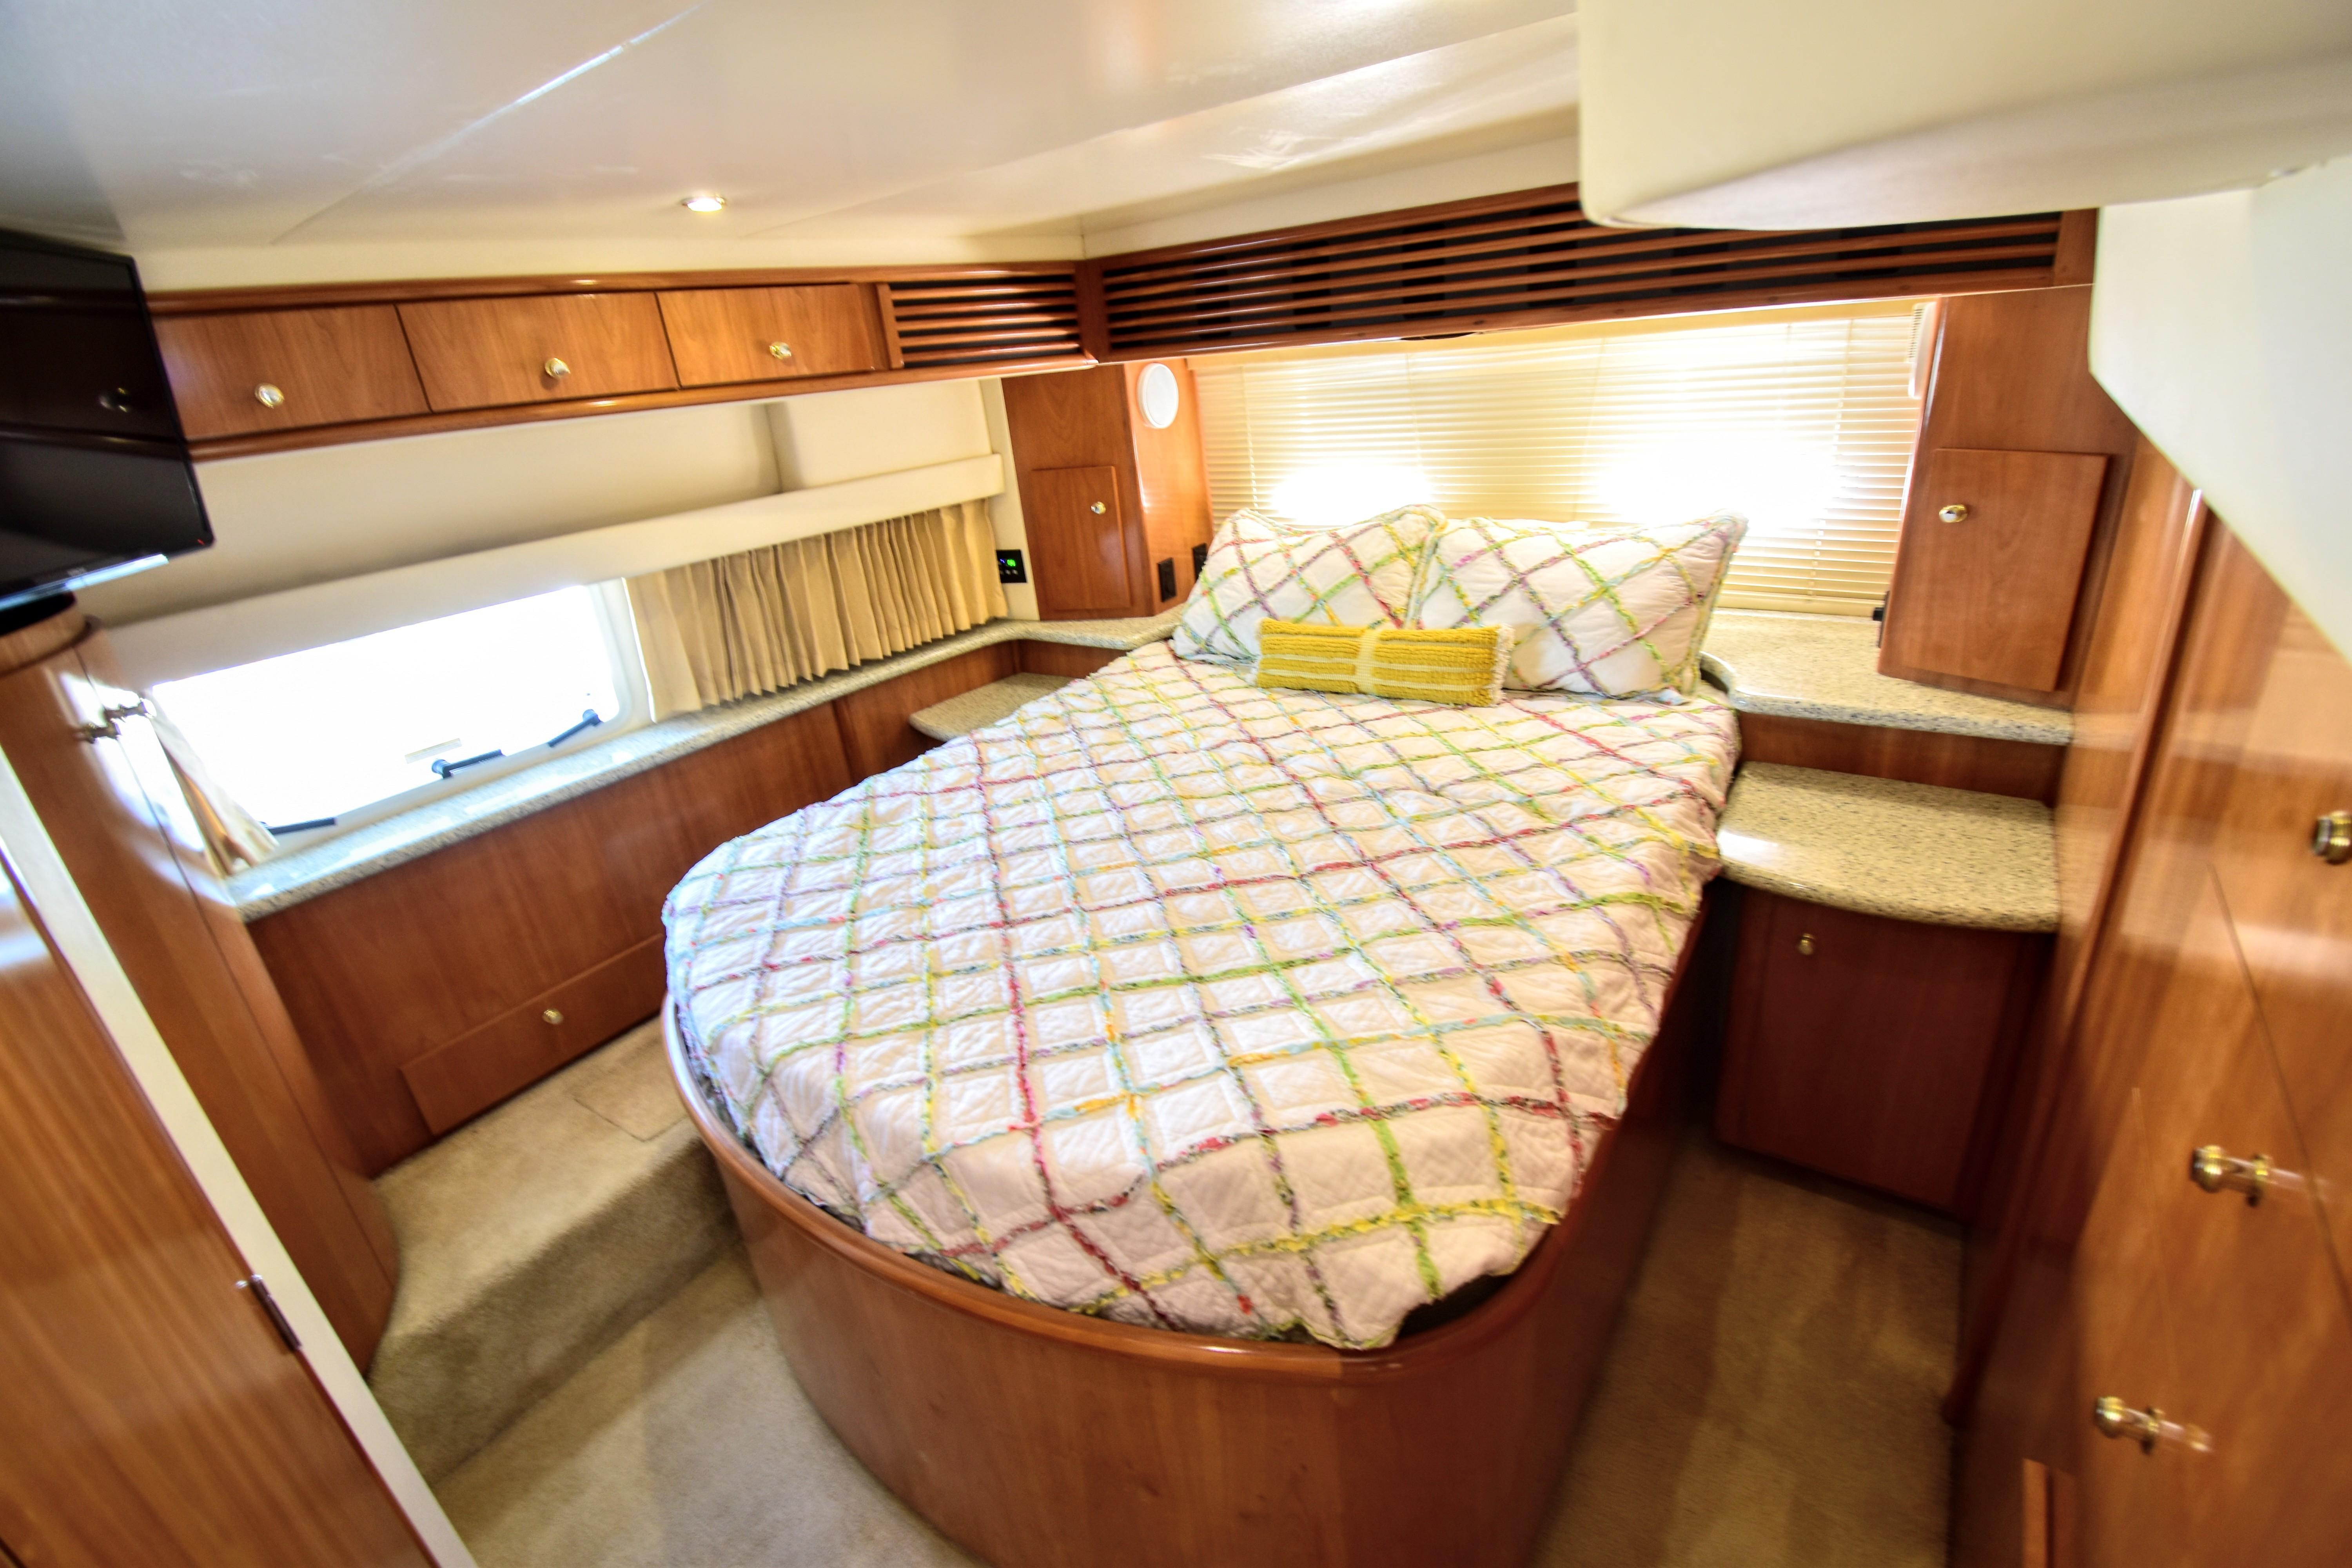 2001 Carver 396 Aft Cabin Motor Yacht - Yacht Sales and Services